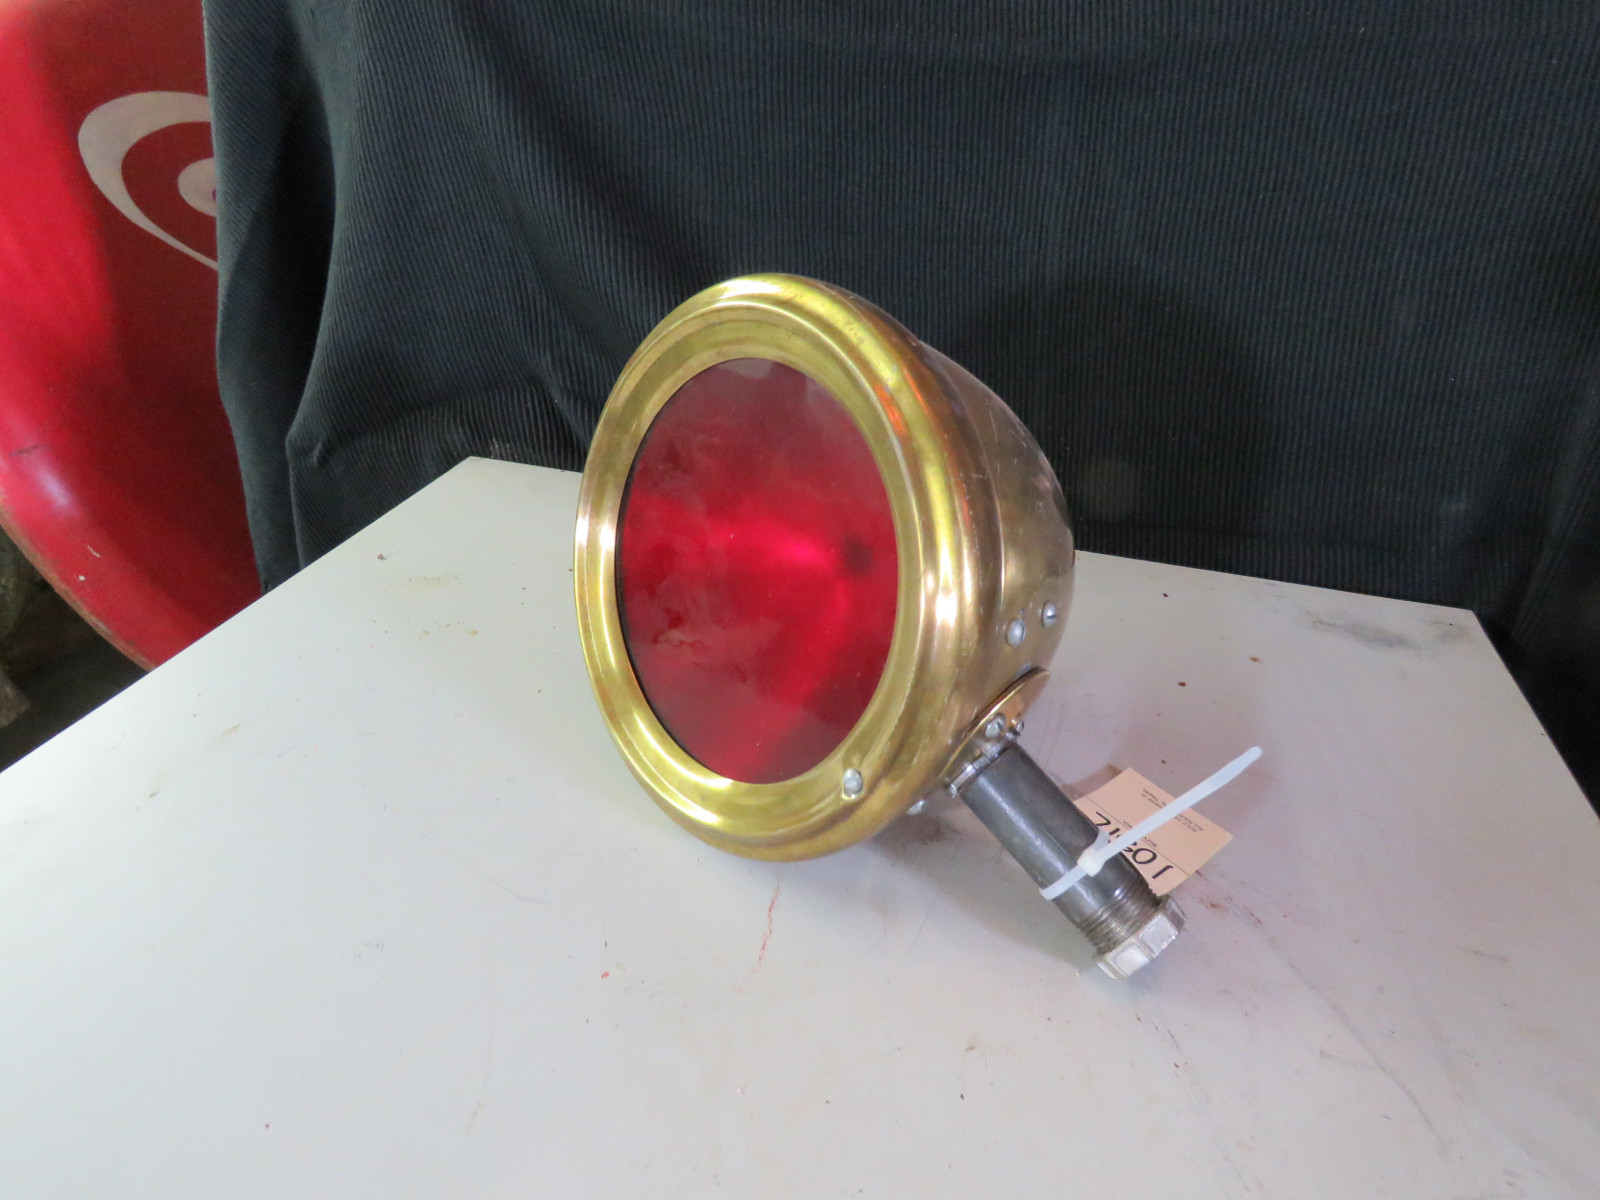 Vintage Brass light with red lens - Image 1